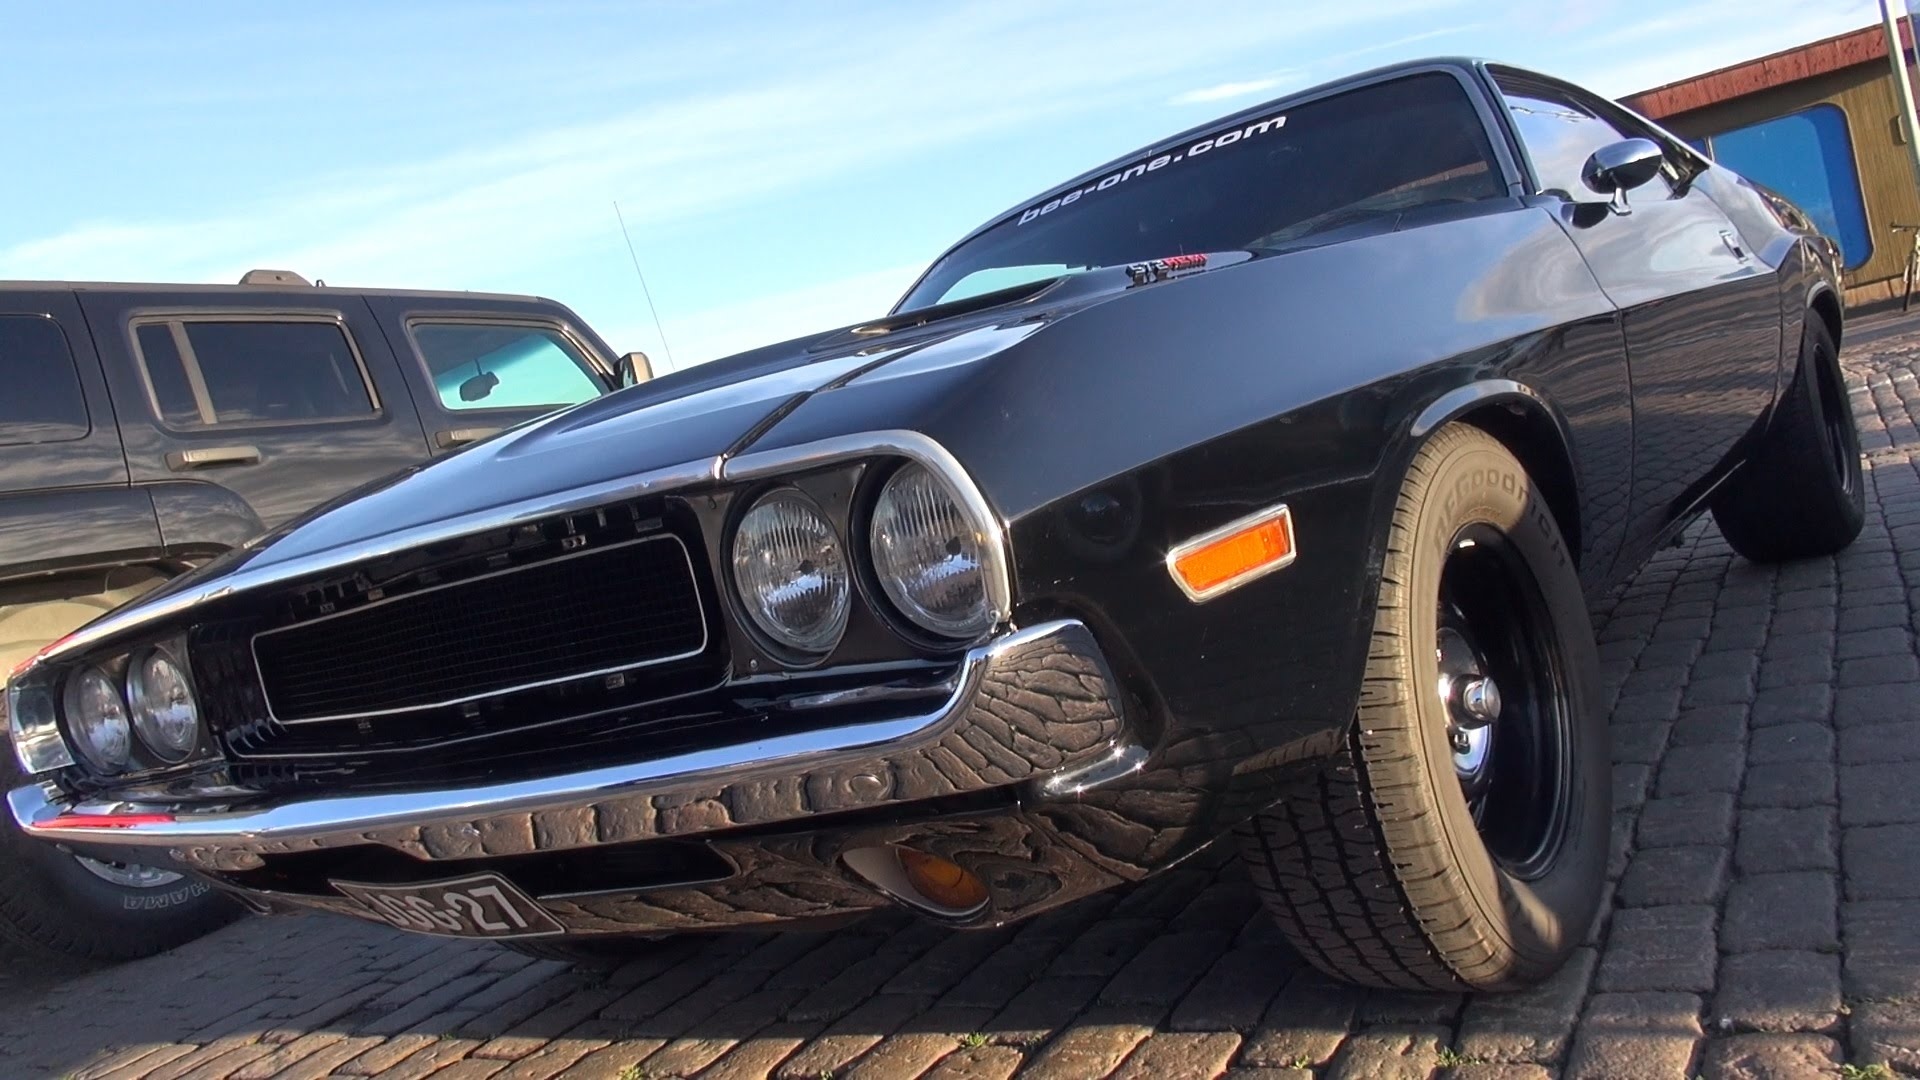 Check Out This EPIC American Muscle Car Gathering In Finland!